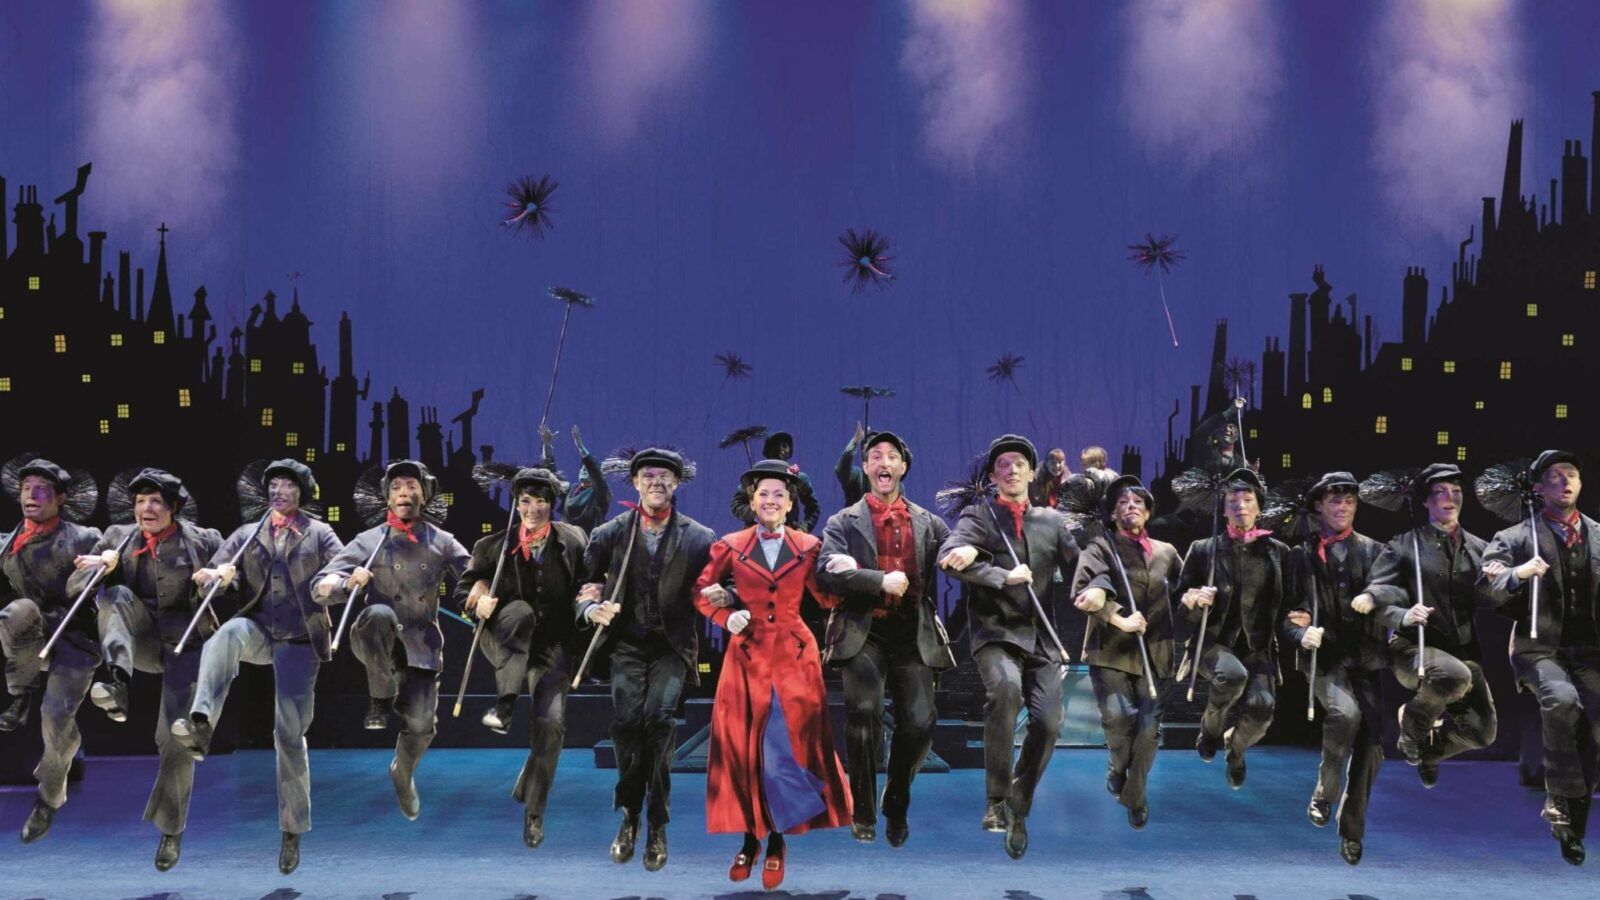 Mary Poppins Stage Theater an der Elbe